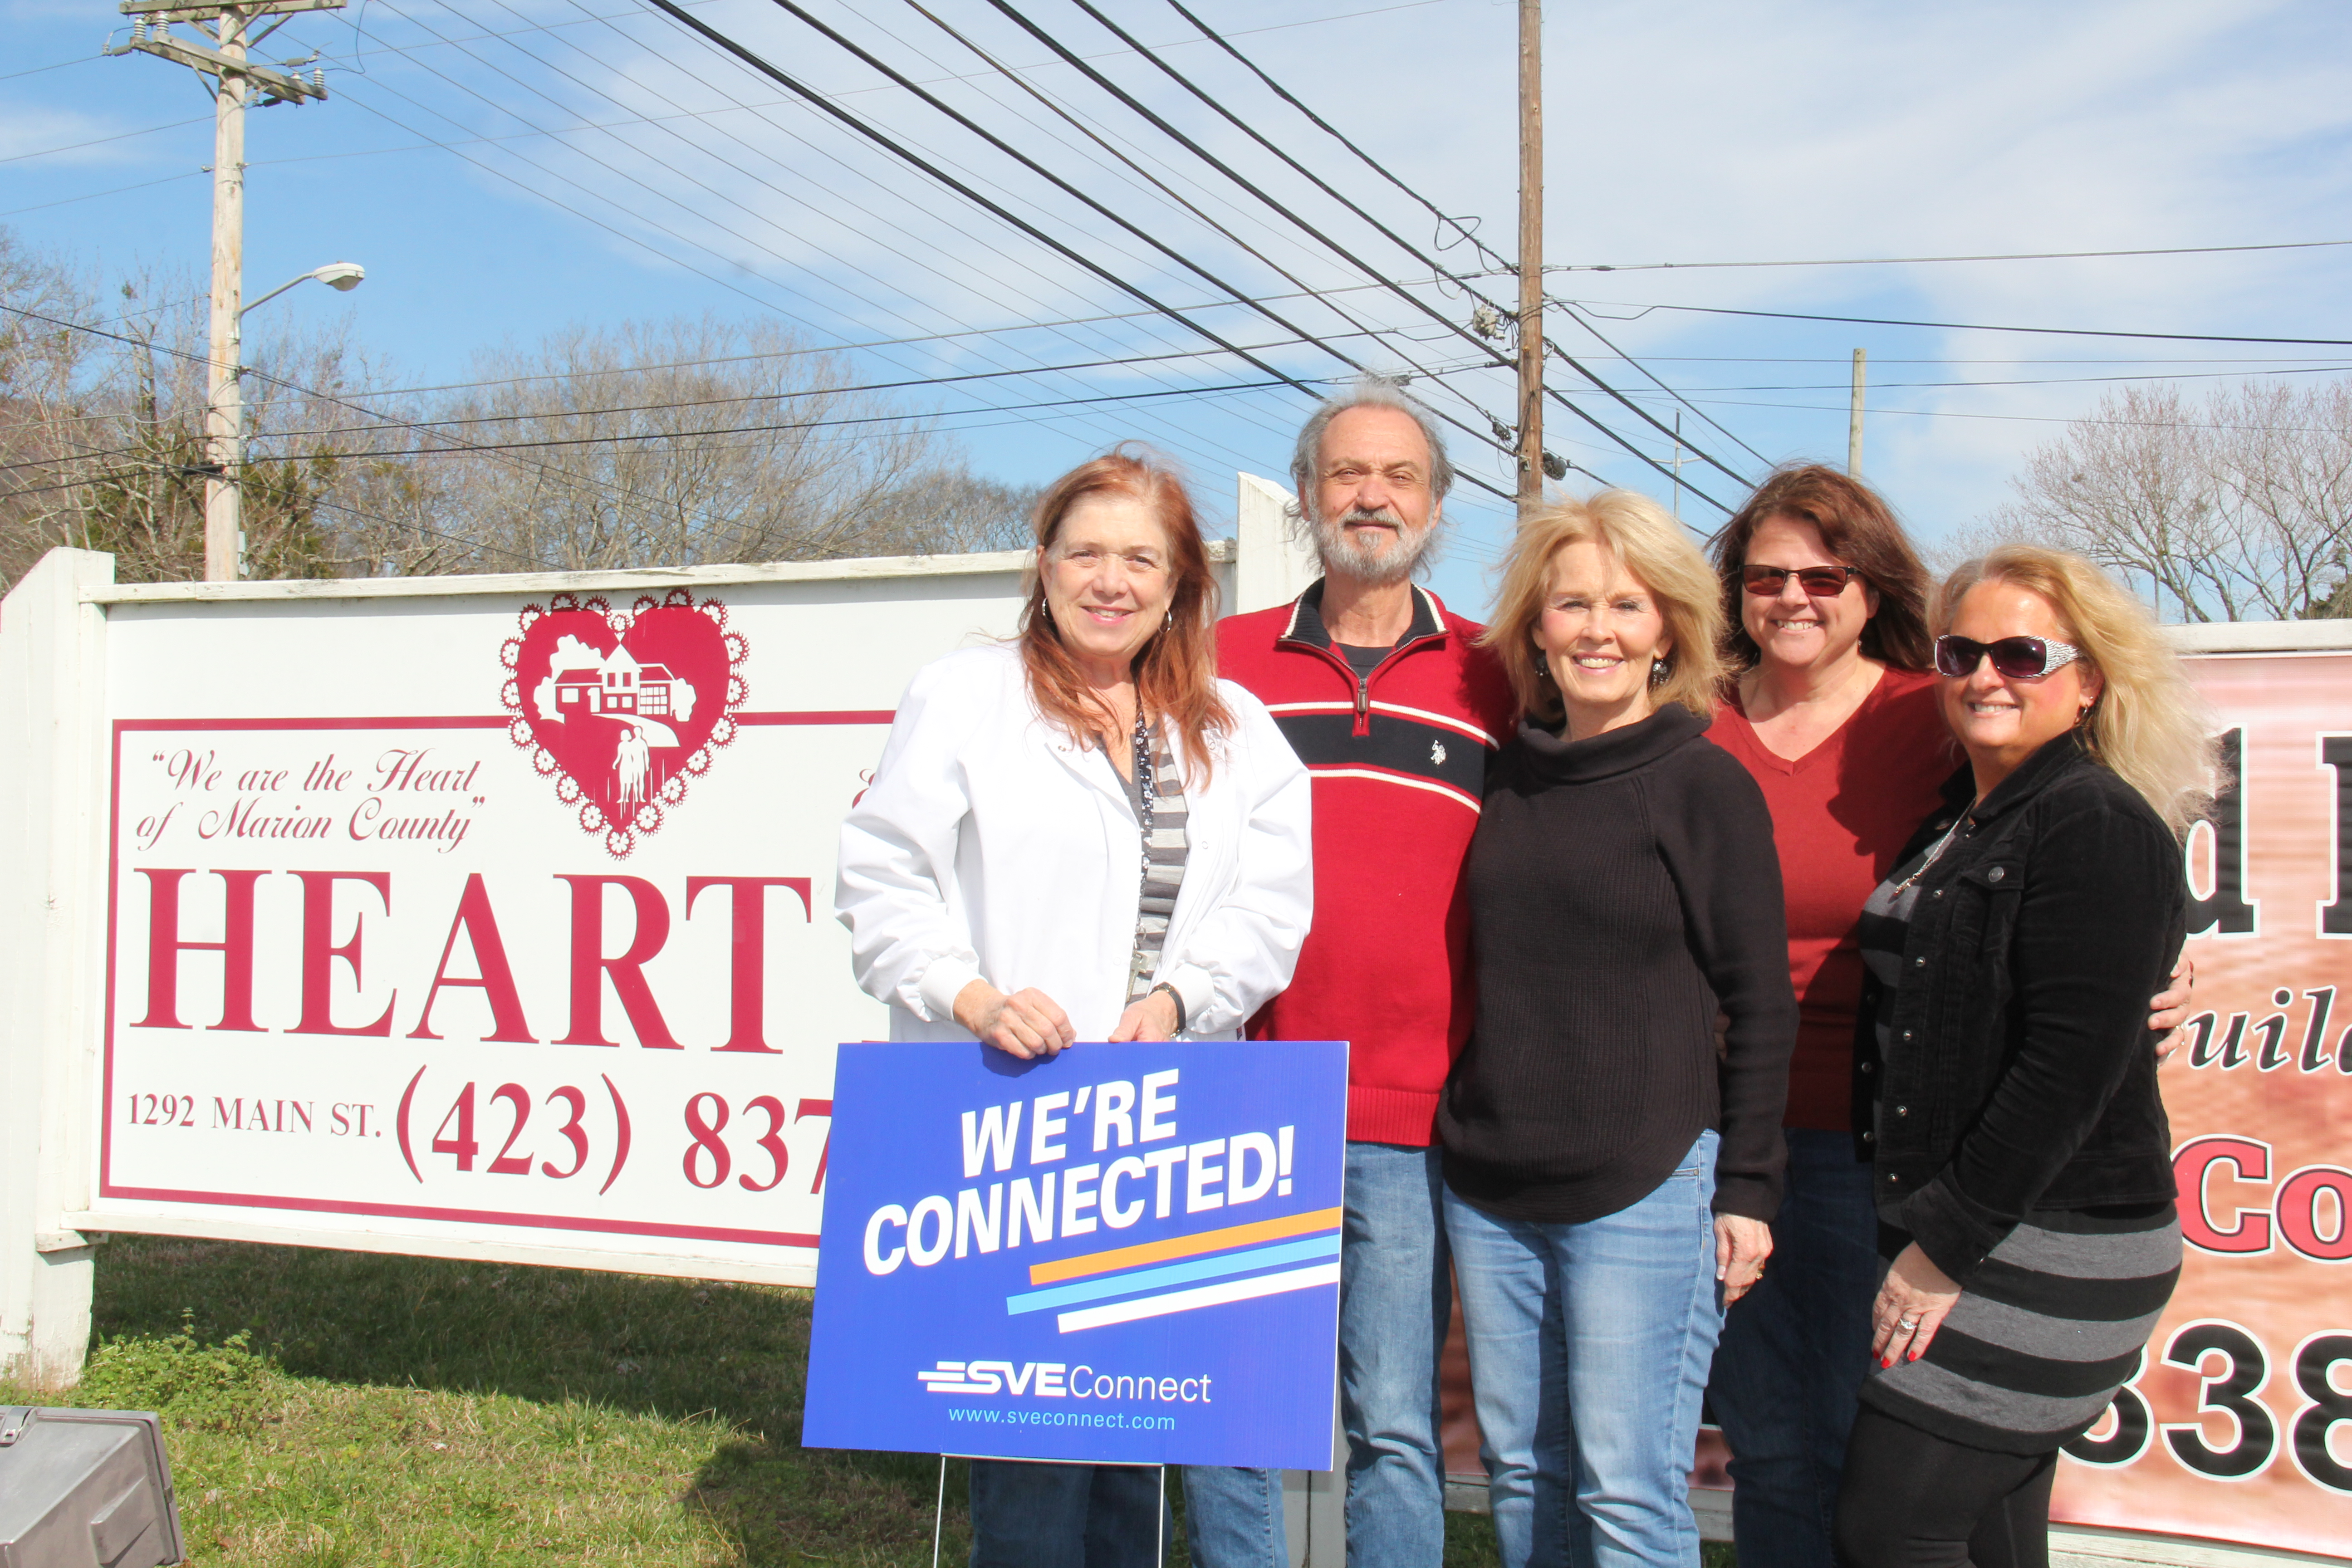 Heart Realty in Kimball is connected